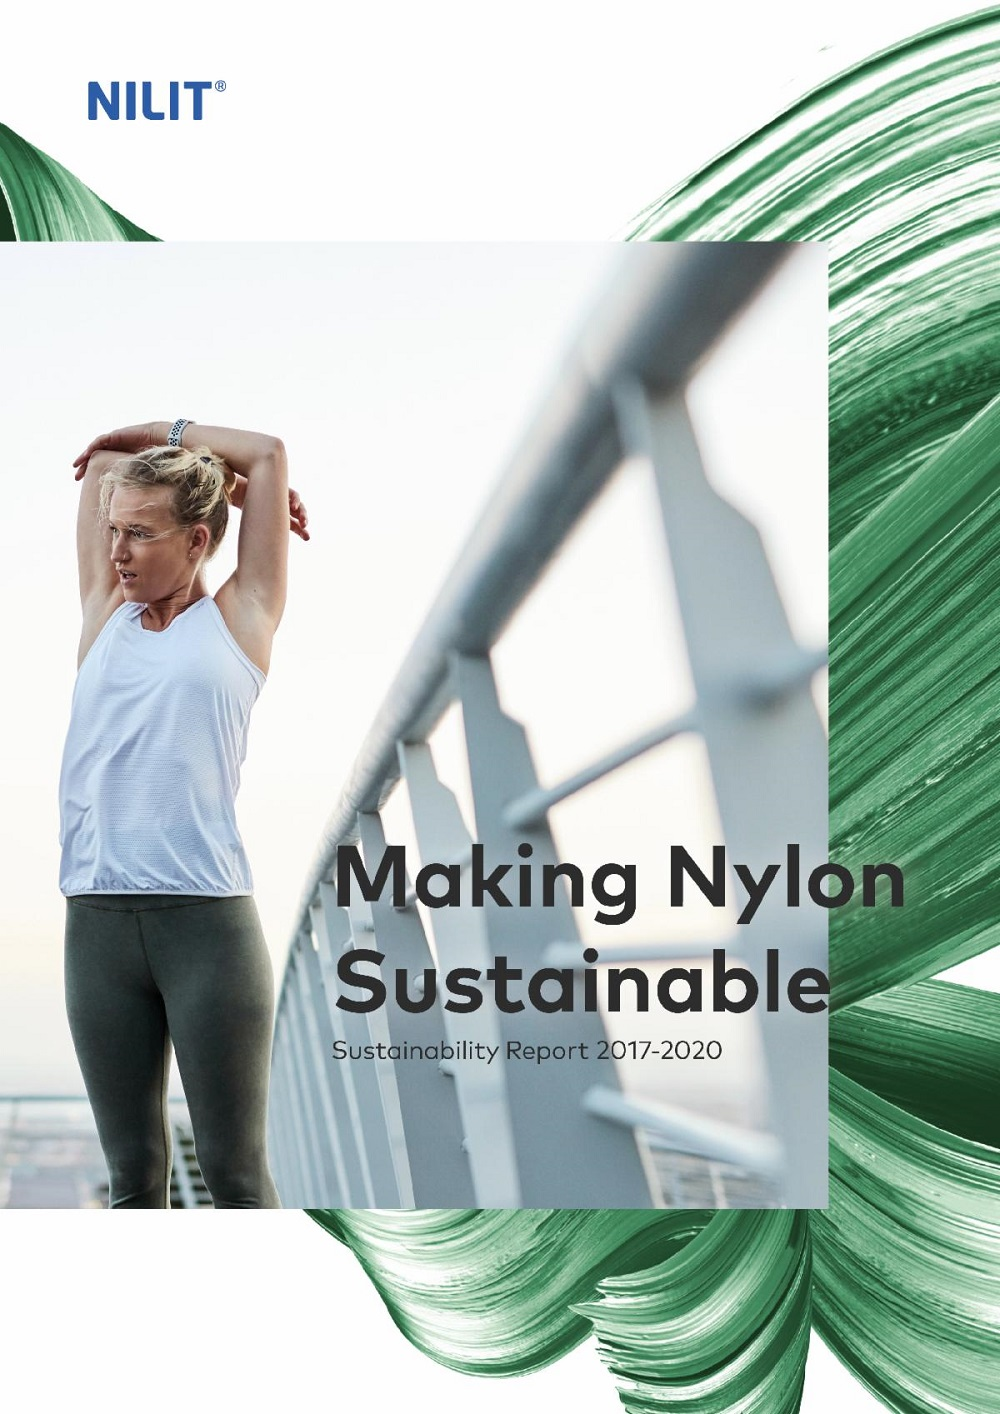 NILIT, a producer of premium nylon for apparel and owner of the Sensil brand, published its sustainability report for 2017-2020.